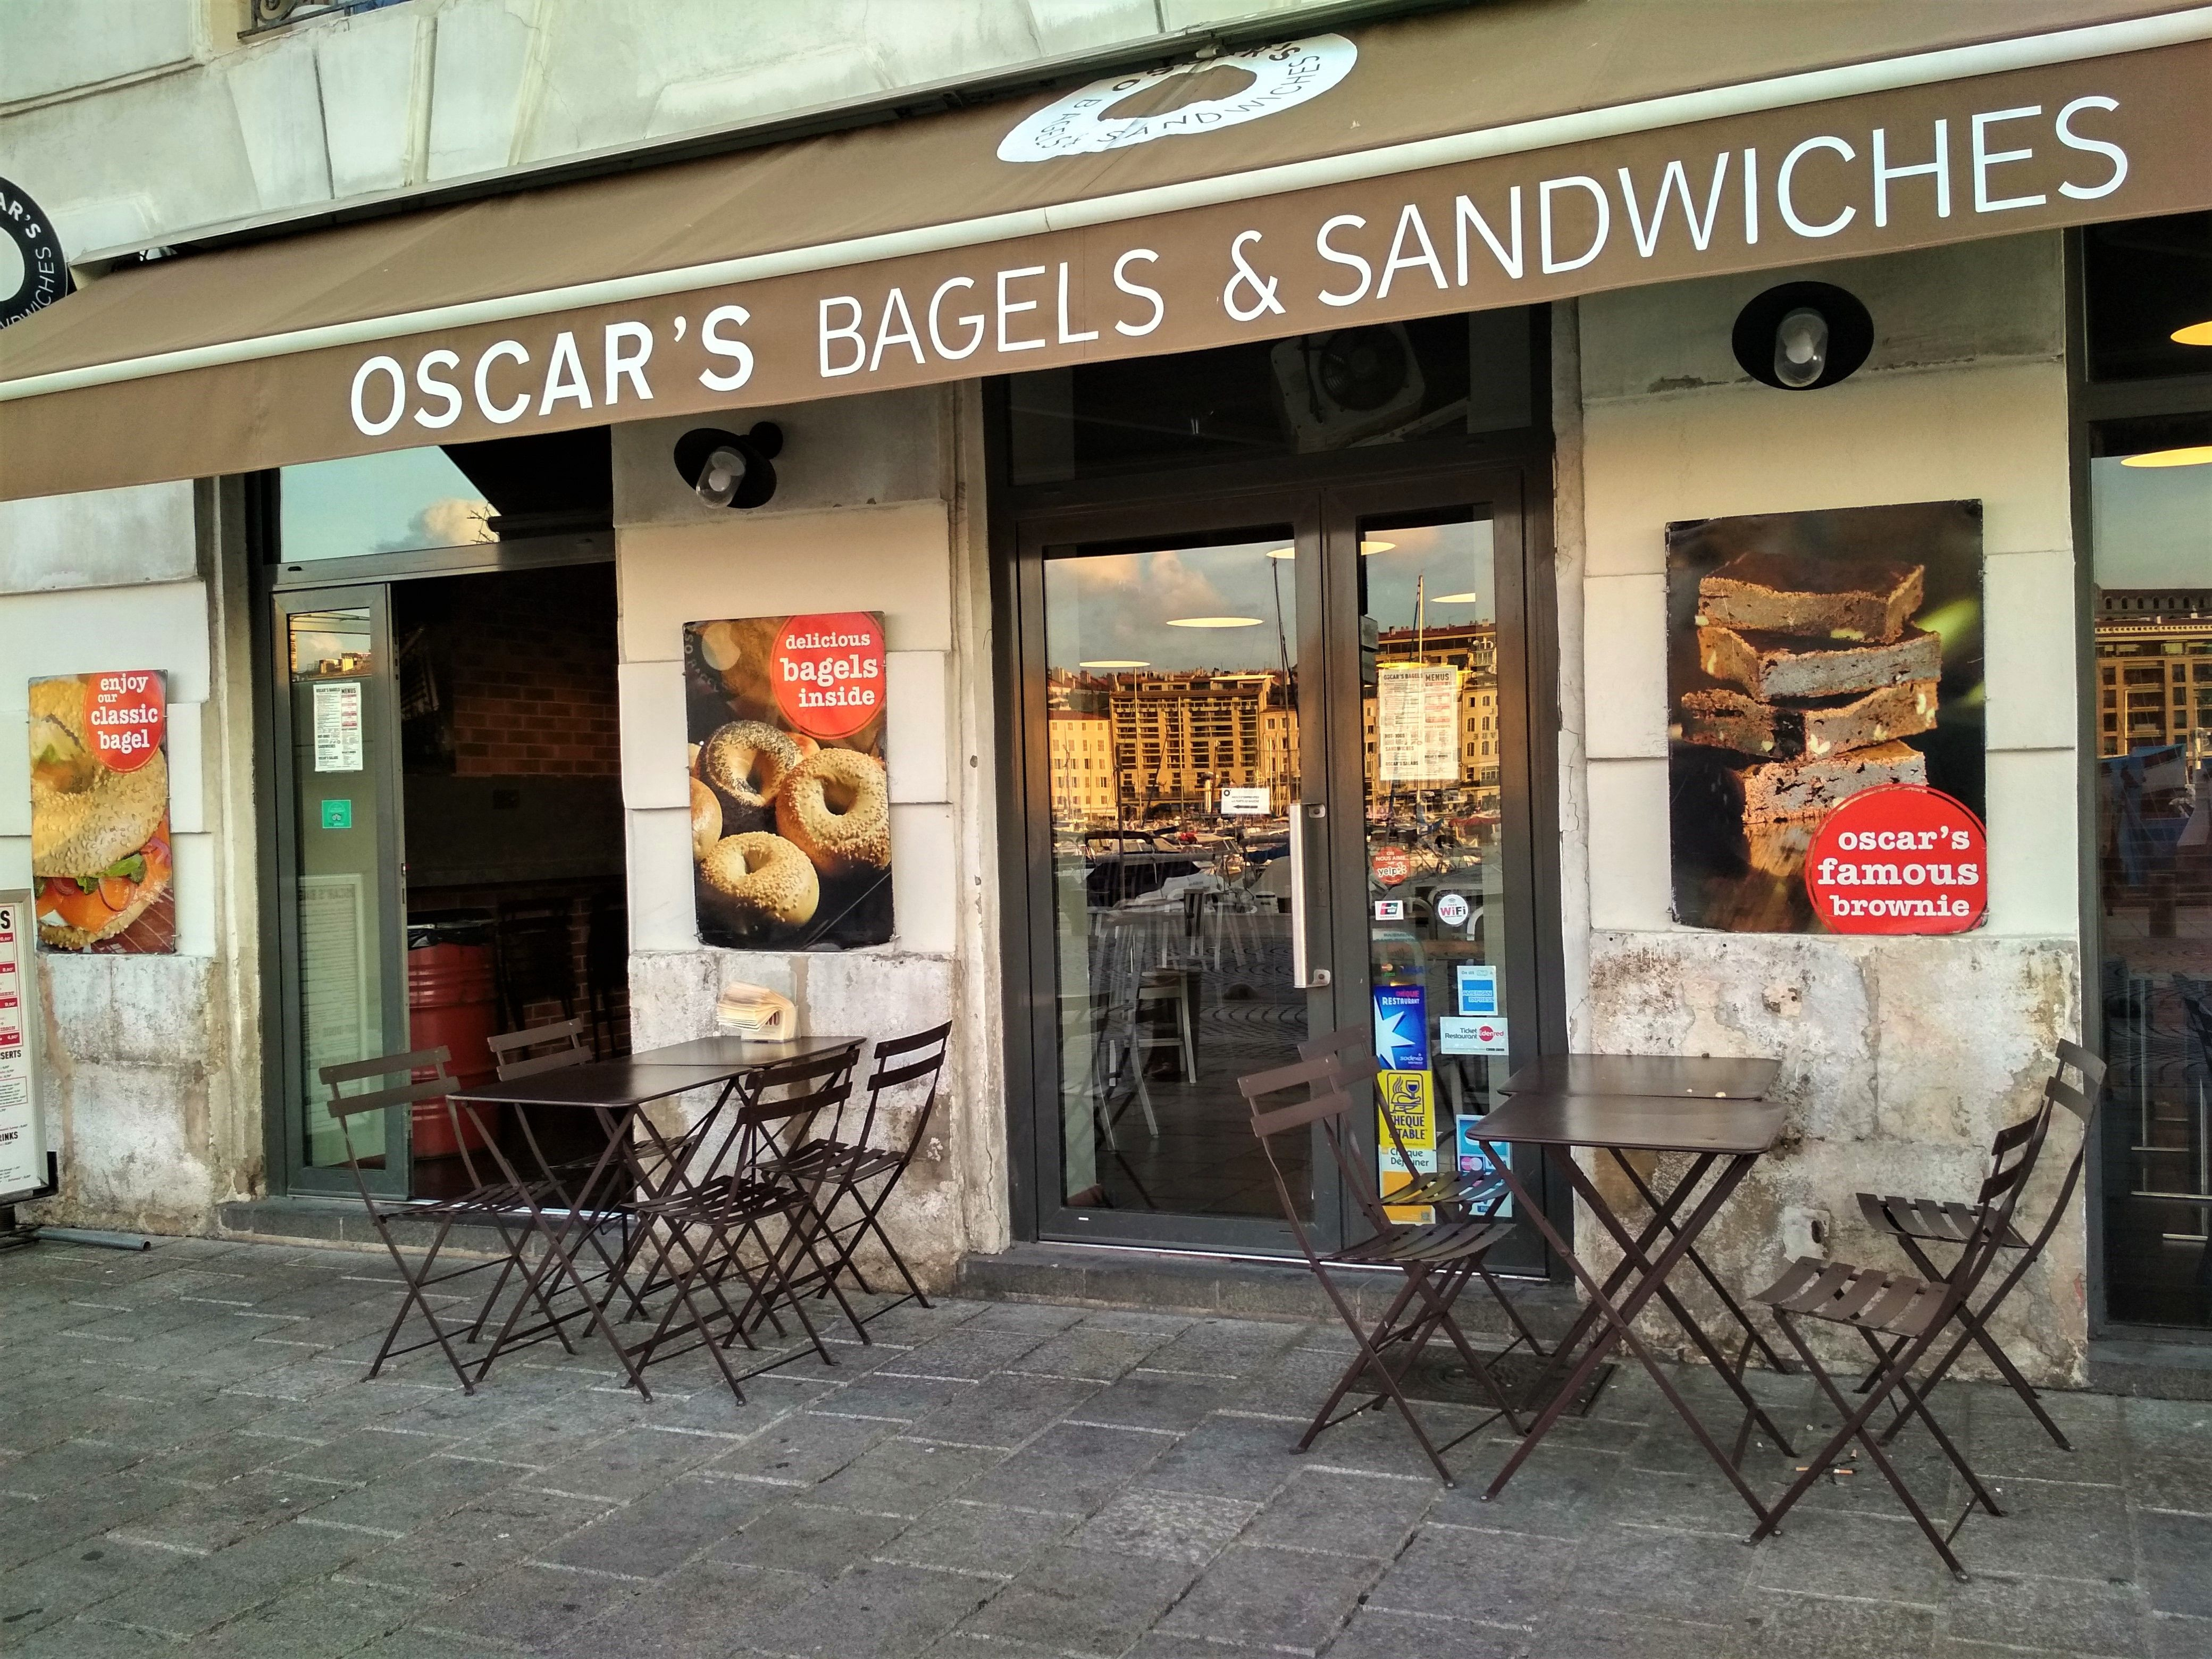 Oscar's Bagels and Sandwiches, Marseille